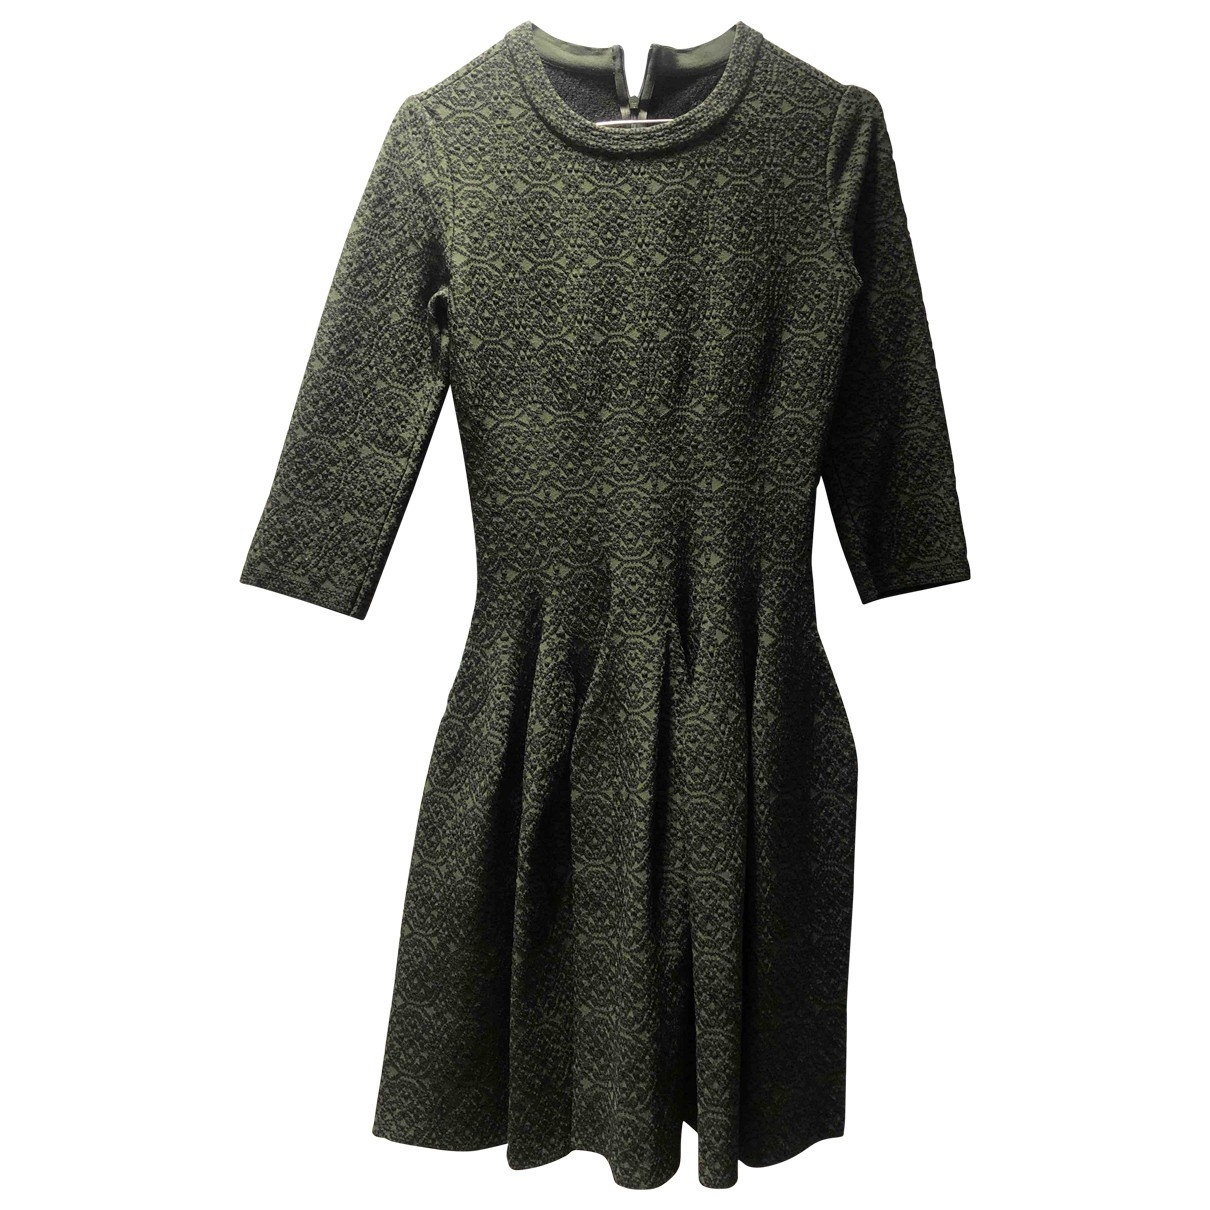 Alaïa \N Green dress for Women 38 FR